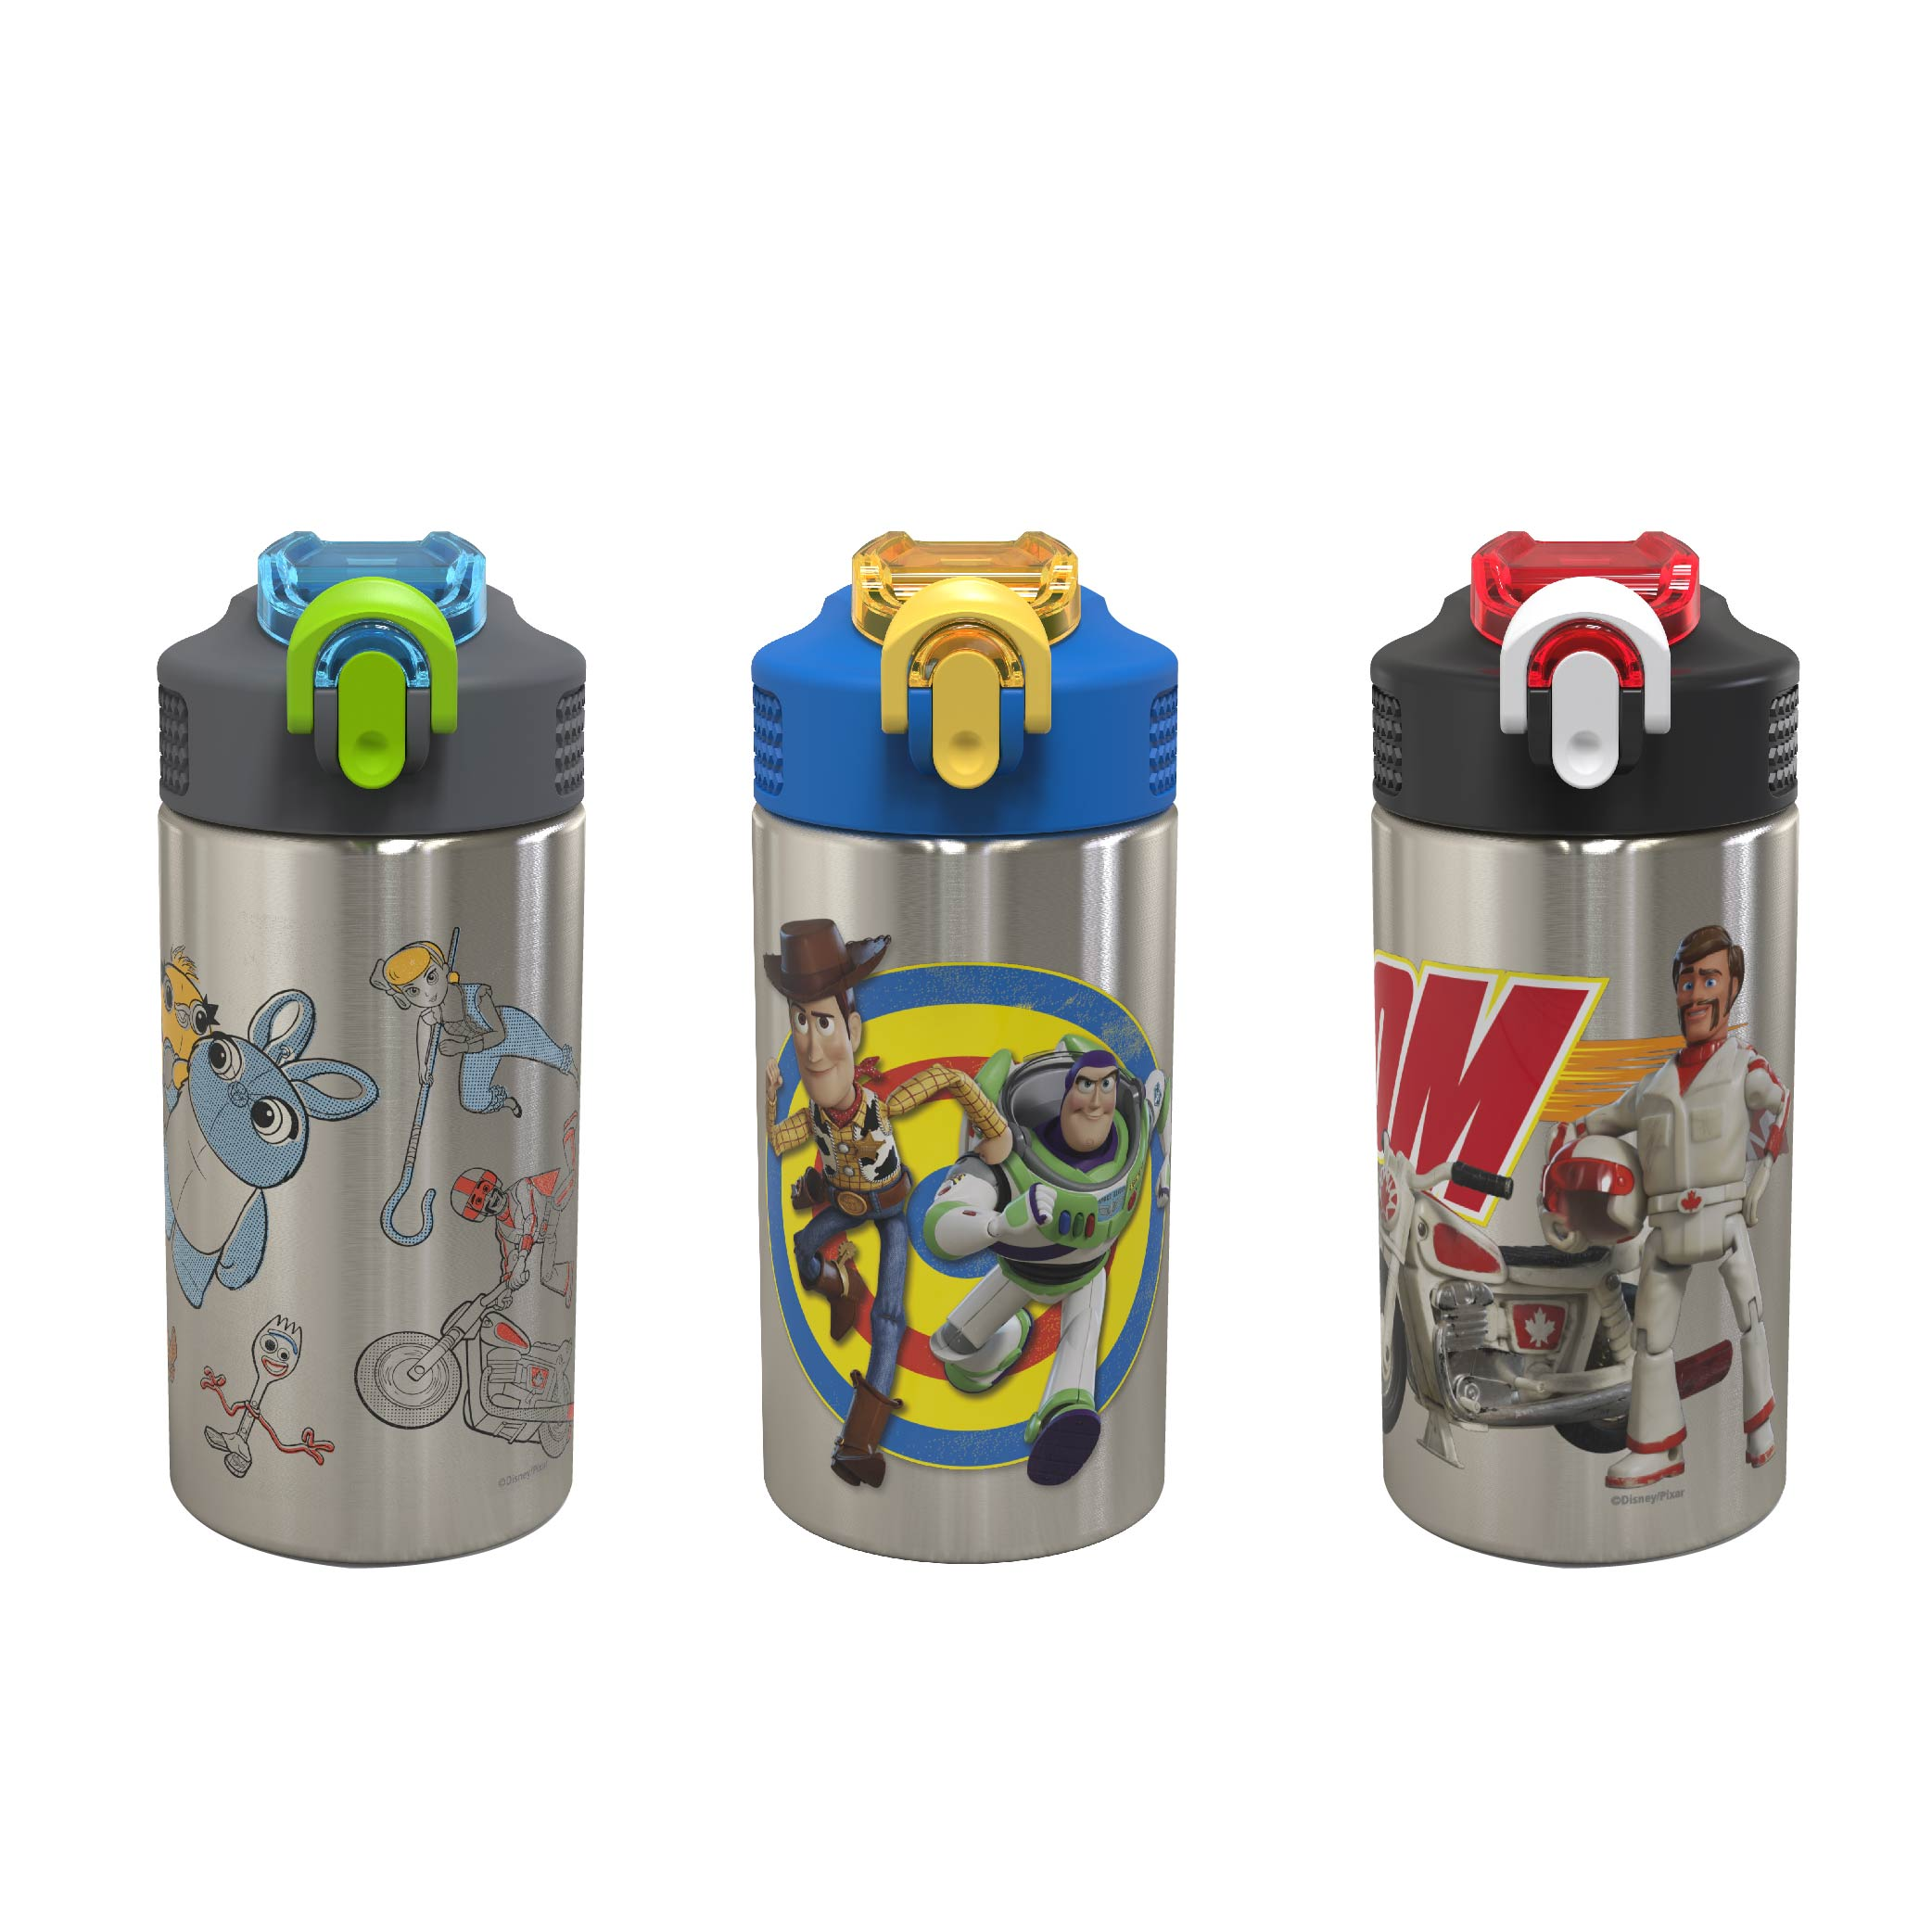 Toy Story 4 15.5 ounce Water Bottle, Buzz, Woody & Friends slideshow image 6